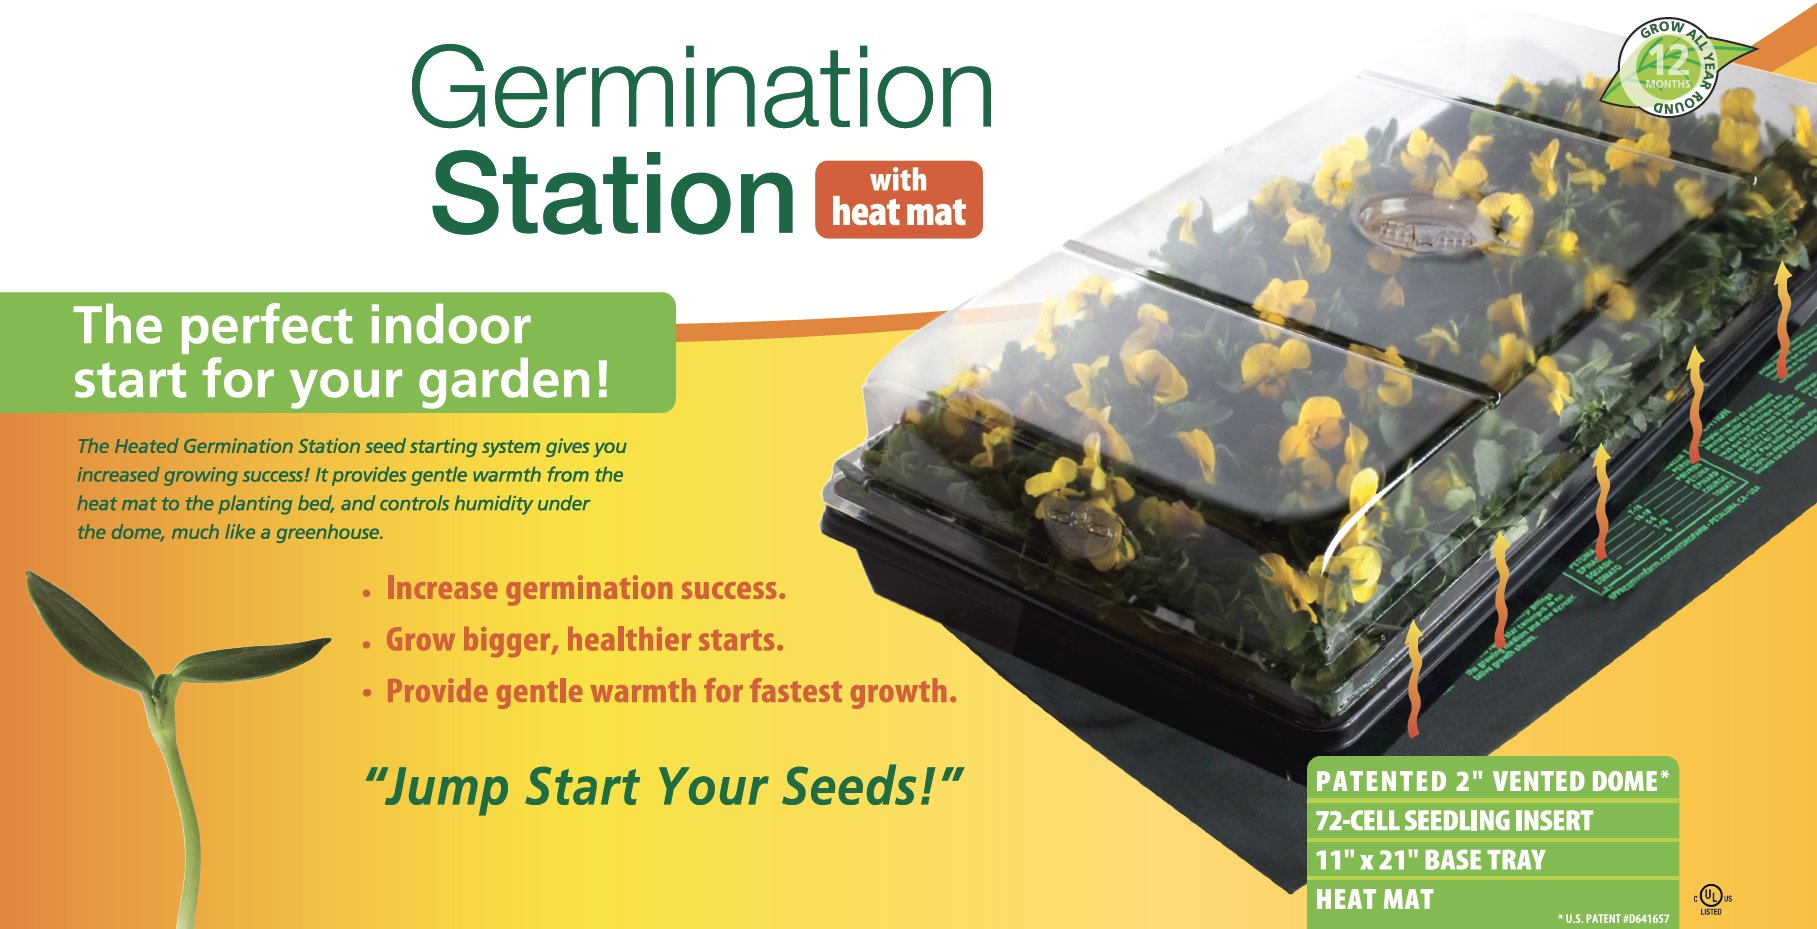 Jump Start,CK64050 Germination Station w/Heat Mat, Tray, 72-Cell Pack, 2'' Dome